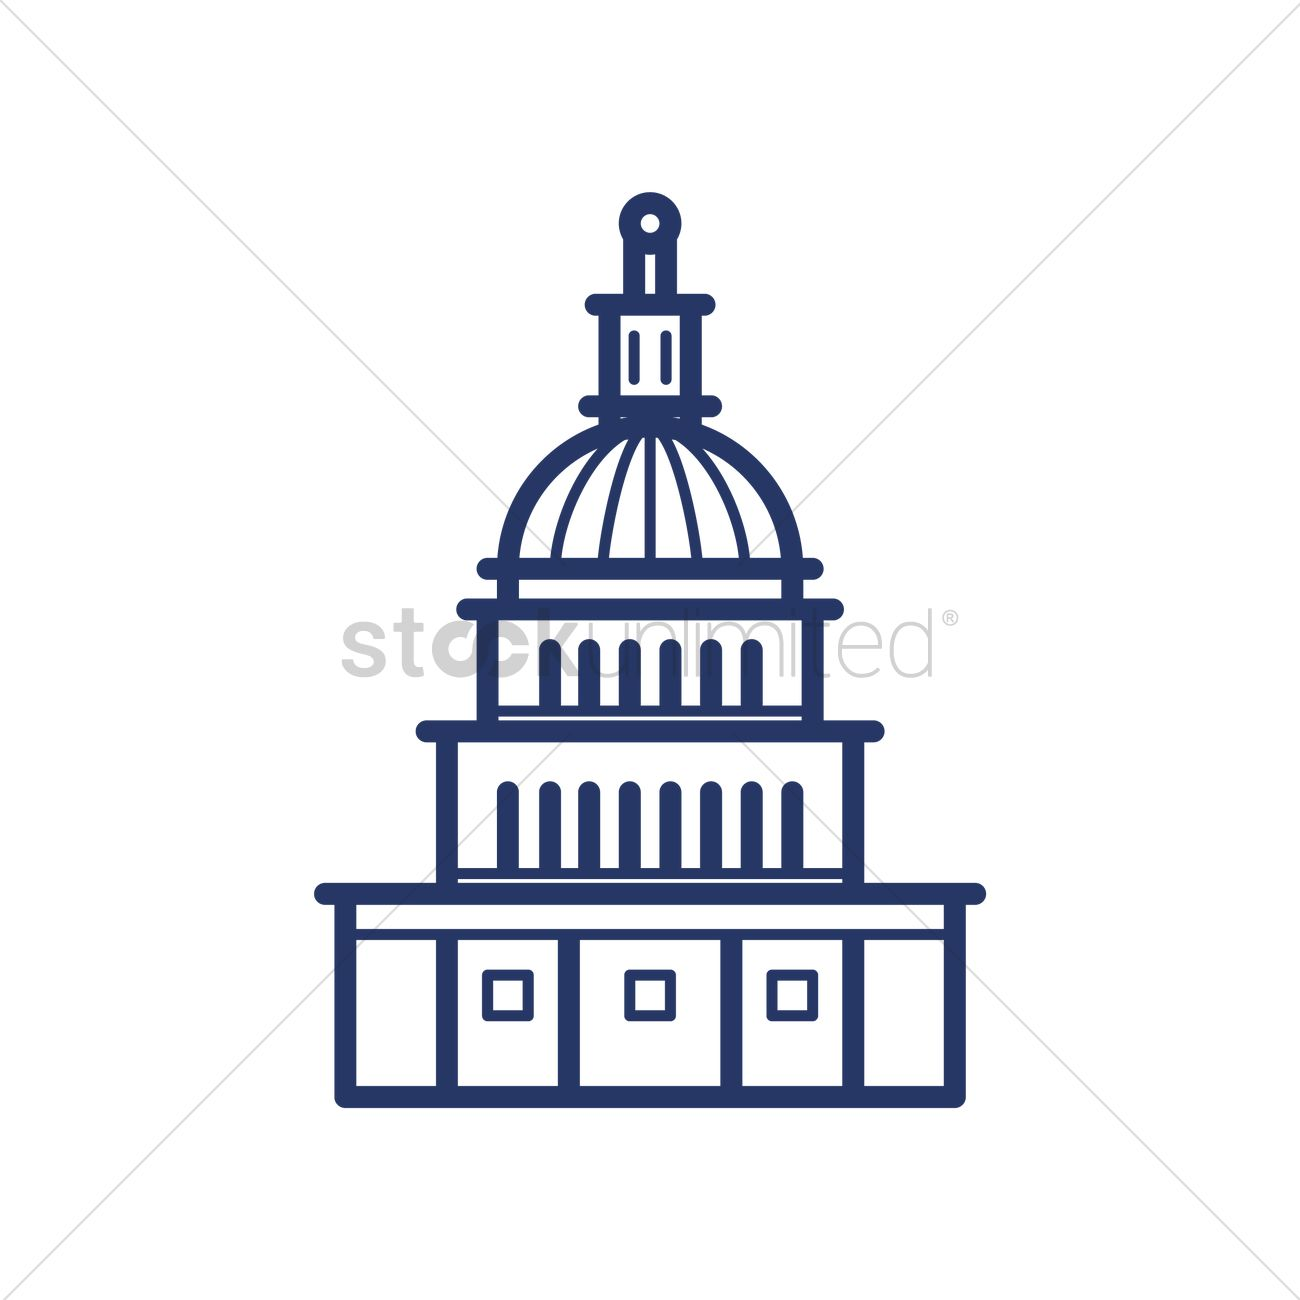 us capitol building vector image 1557989 stockunlimited rh stockunlimited com austin capitol building vector capitol records building vector